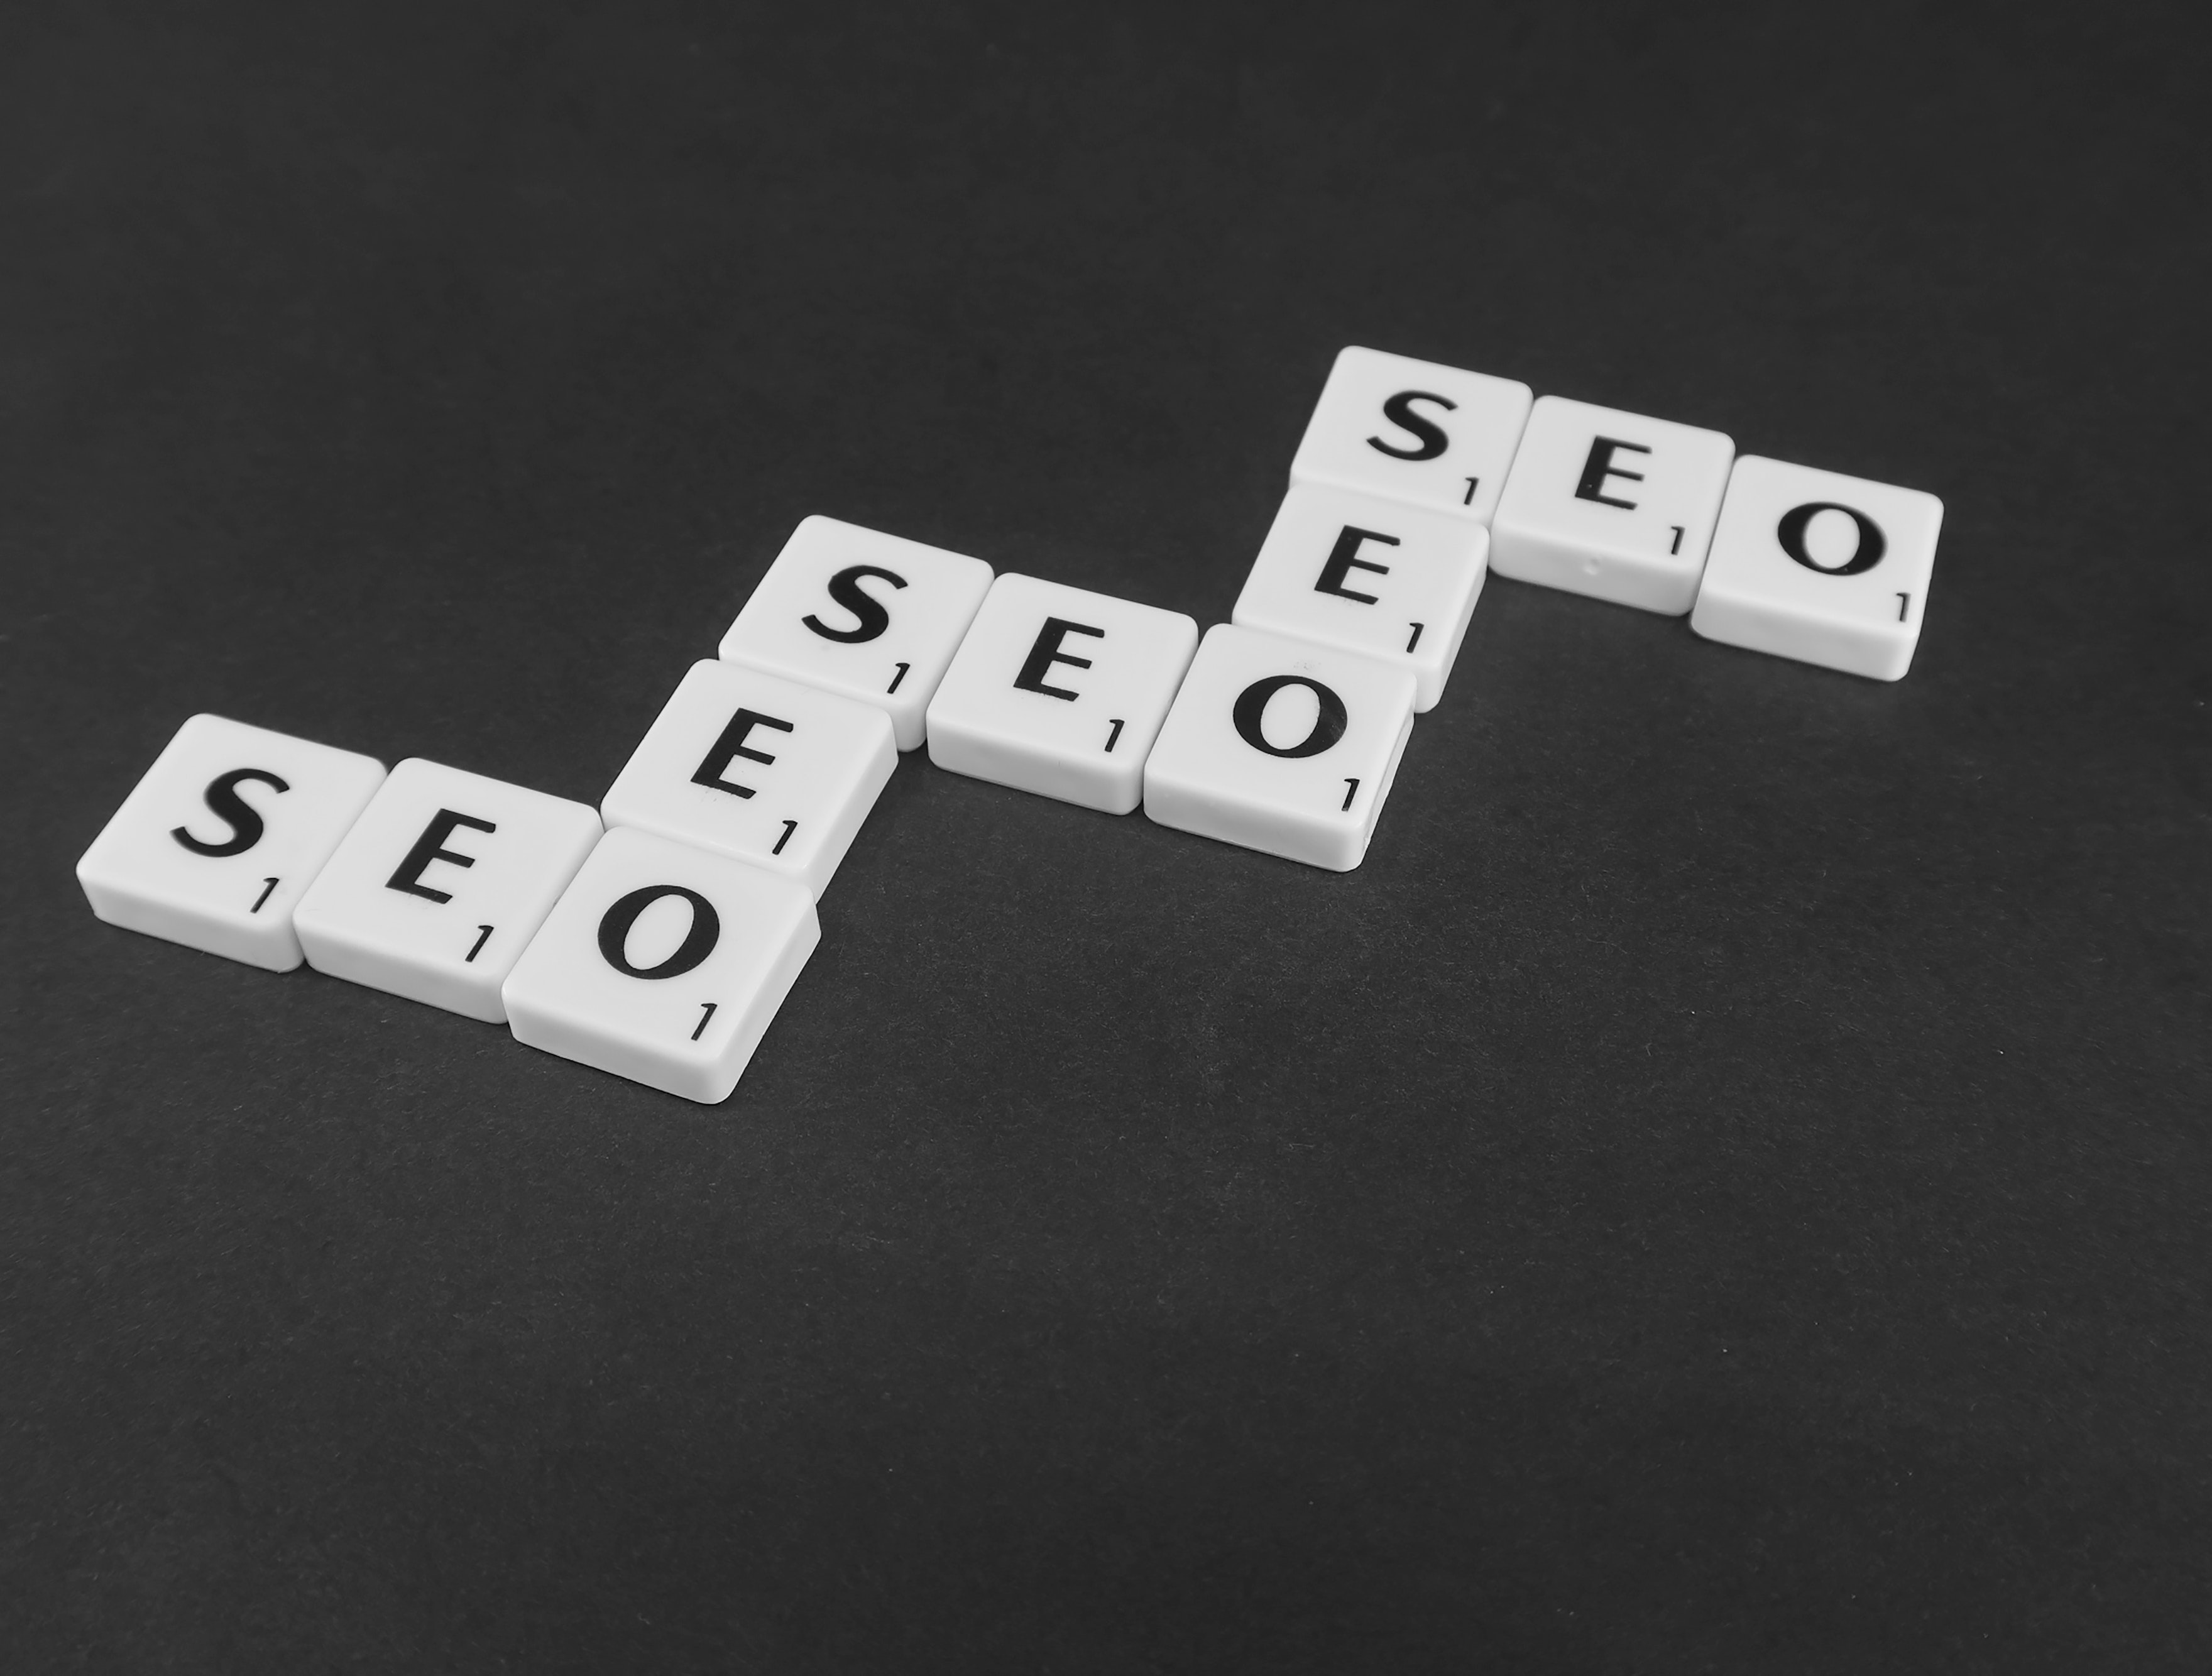 Advanced SEO strategies for the content team to implement